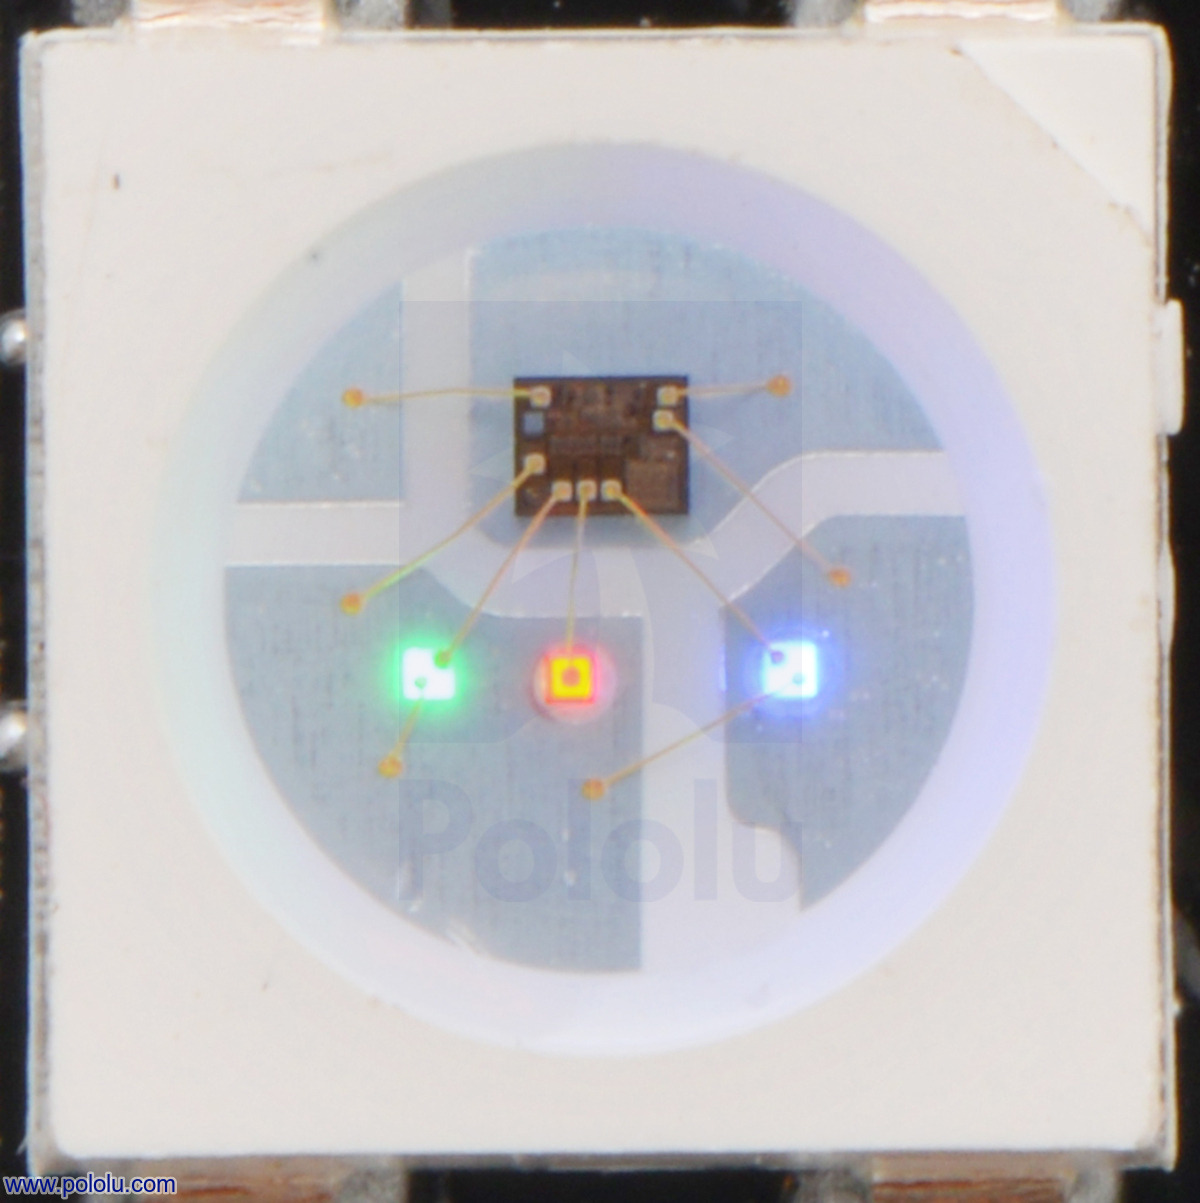 Pololu Addressable Rgb 120 Led Strip 5v 2m Sk6812 Display Driver Circuit Design With Total Positive Based On Close Up Of An The Red Green And Blue Leds At Their Dimmest Setting